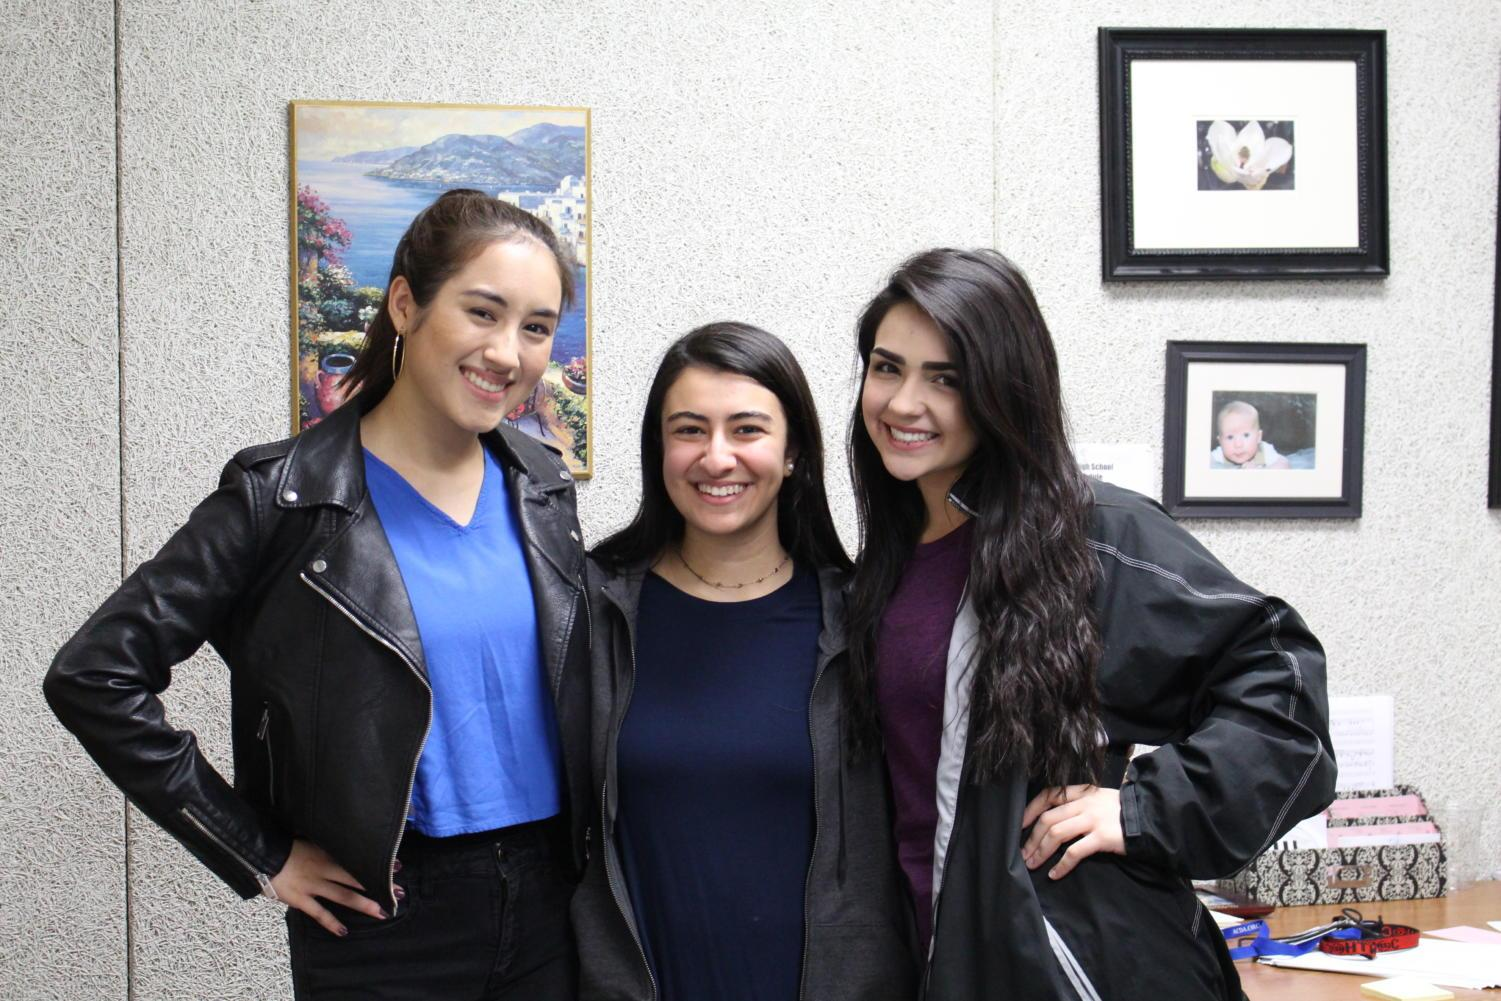 Coppell High School Choir junior Arzue Shakeri, senior Ashley Benhayoun and senior Tori Kennedy smile during 7th period after placing in the All-State Choir. The All-State Choir is a group of highly selected individuals who show certain talents which are brought together to form choirs such as the Treble Choir, Mixed Choir and many more.